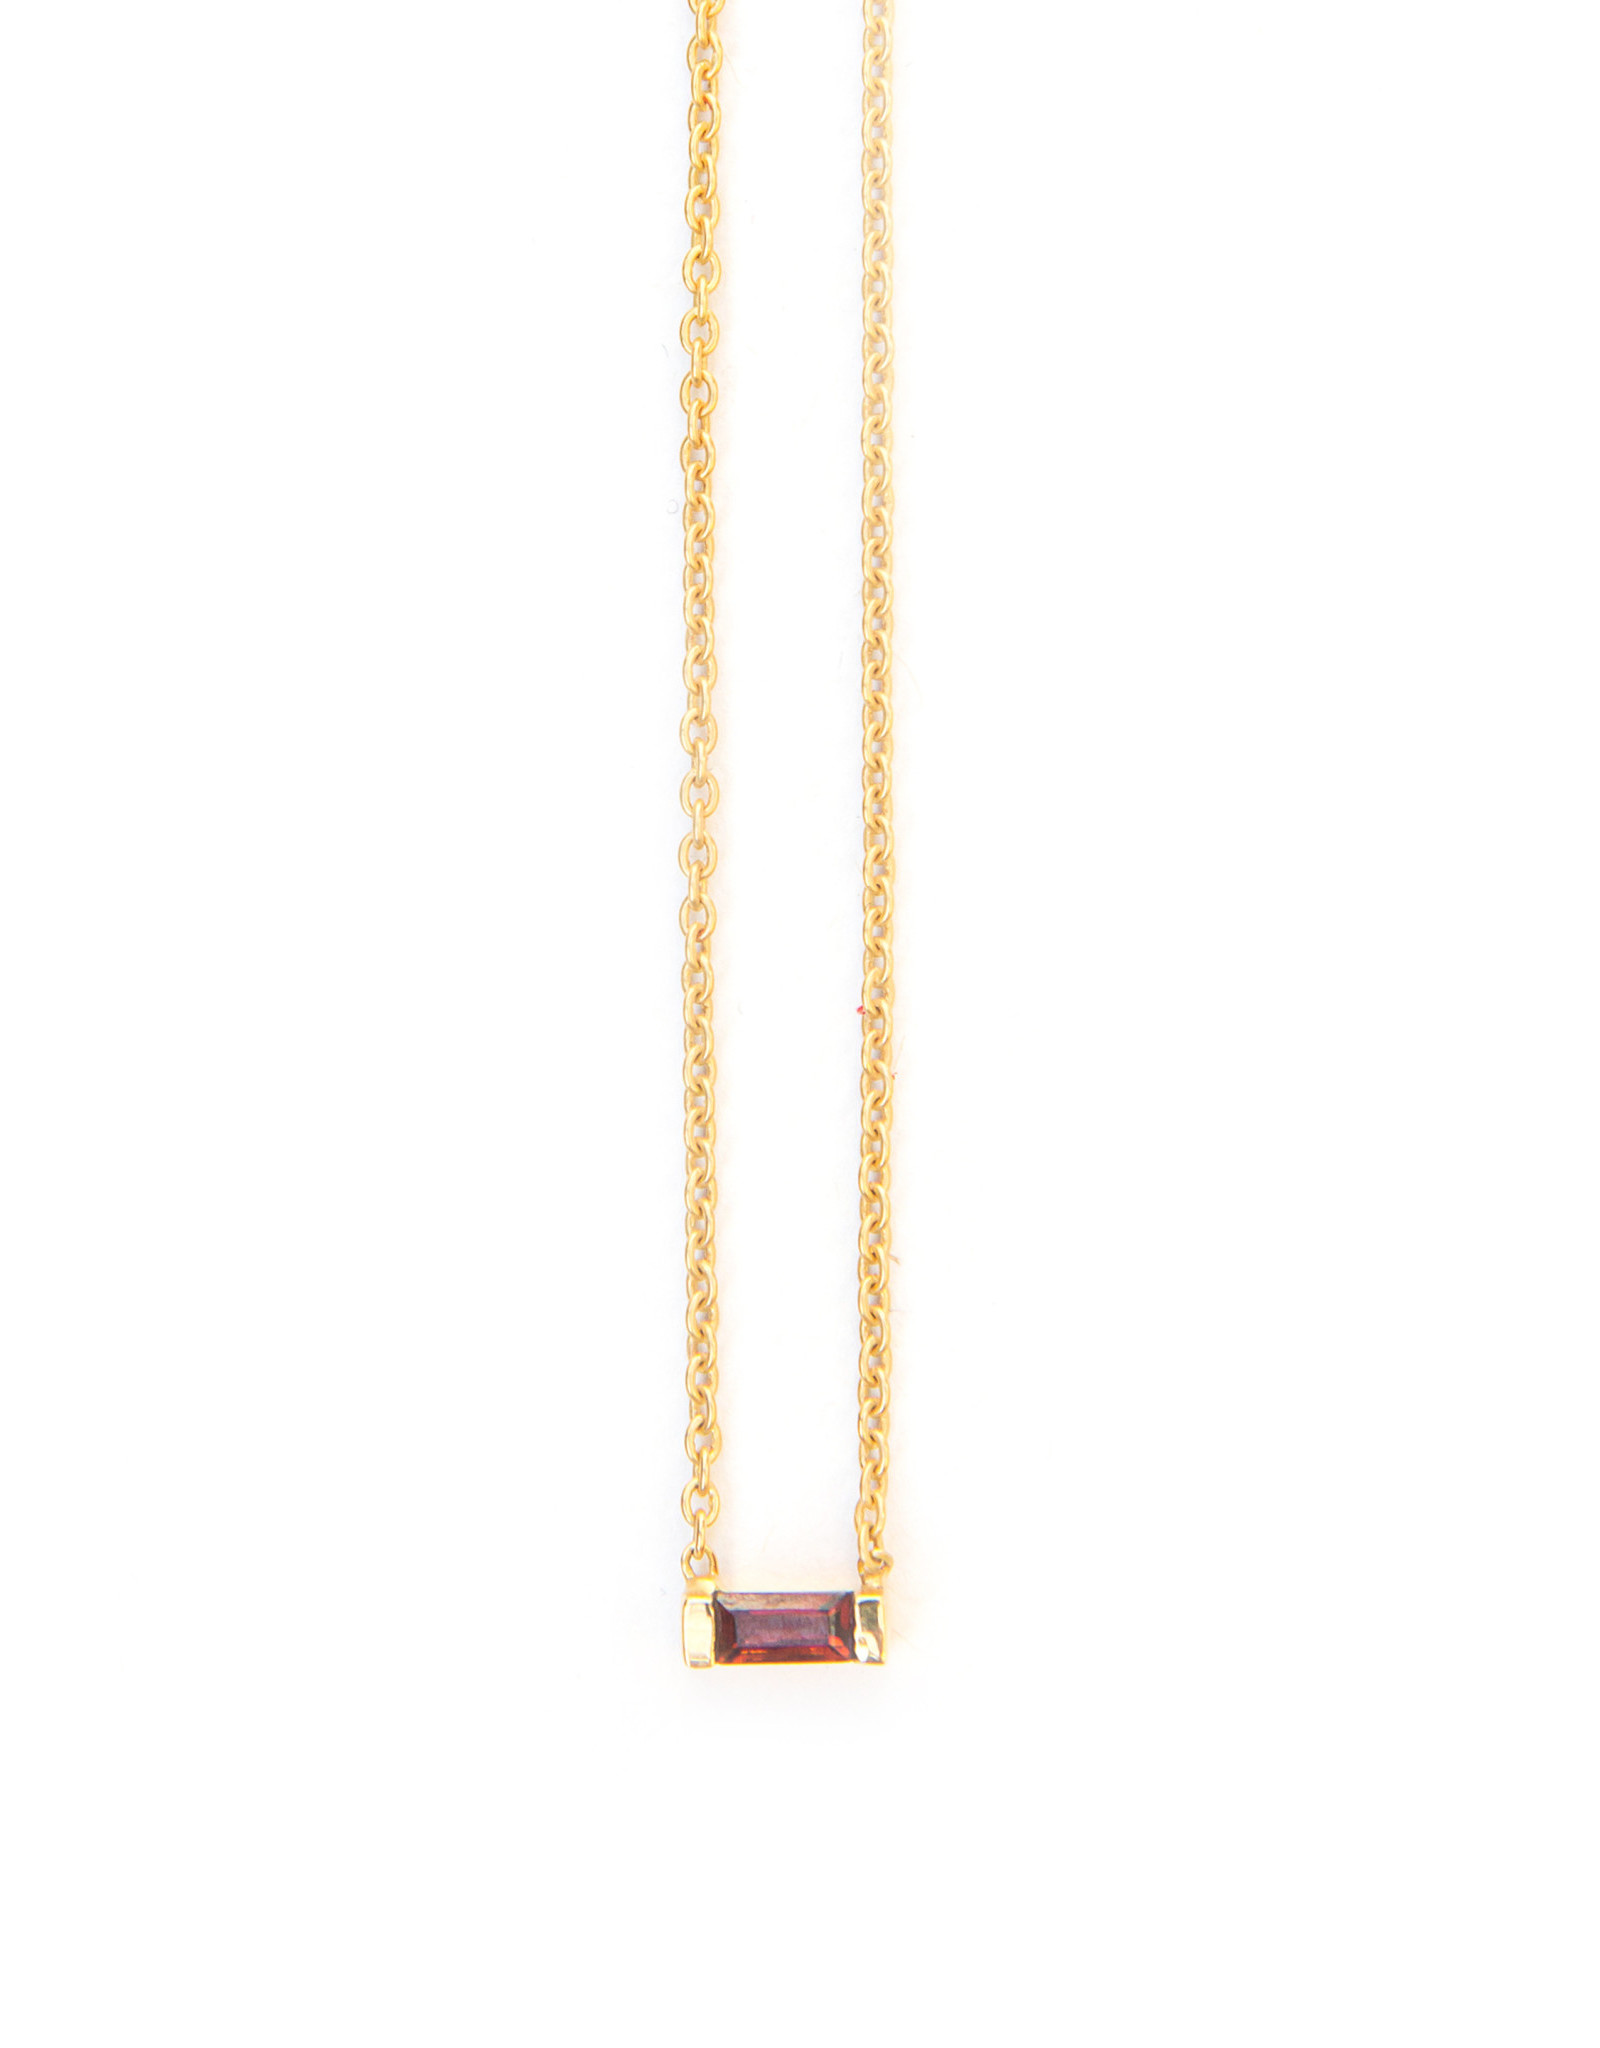 Fair Anita Prism Gold Necklace with Garnet